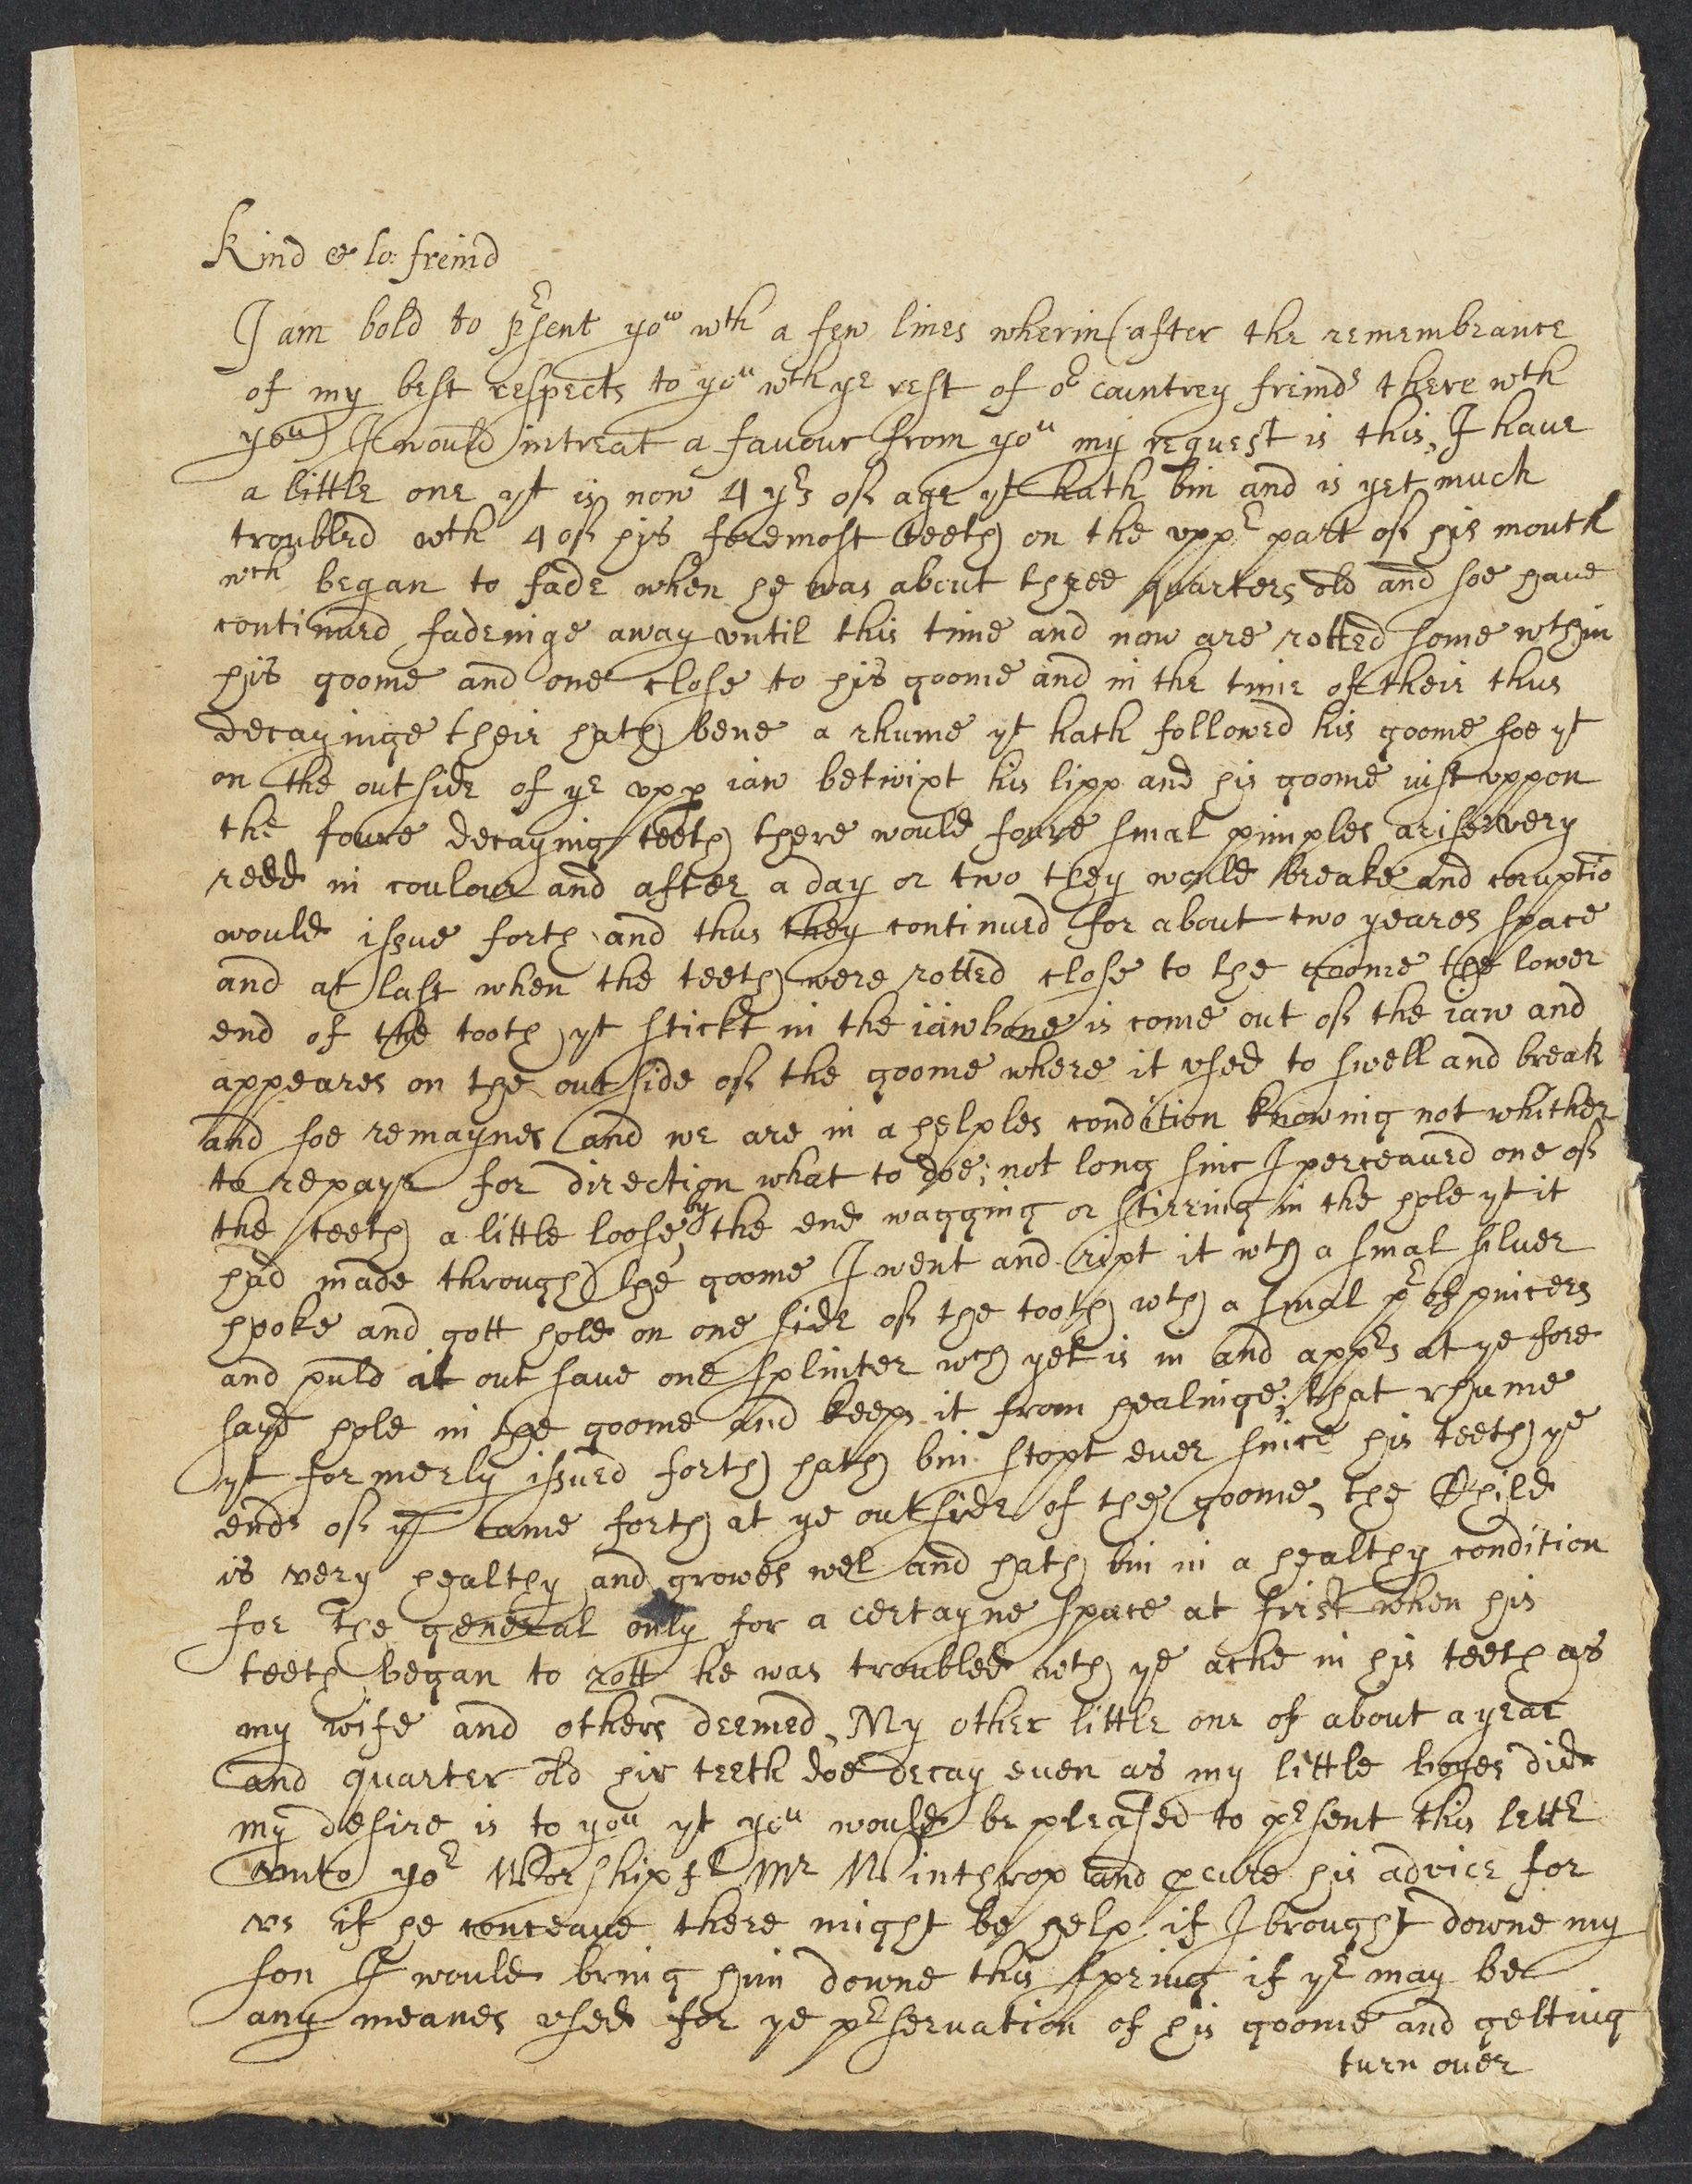 Clarke, Daniell, autographed letter signed to Hugh Caukin; Windsor, Conn., 1 side (3 pages), 1652 February 11